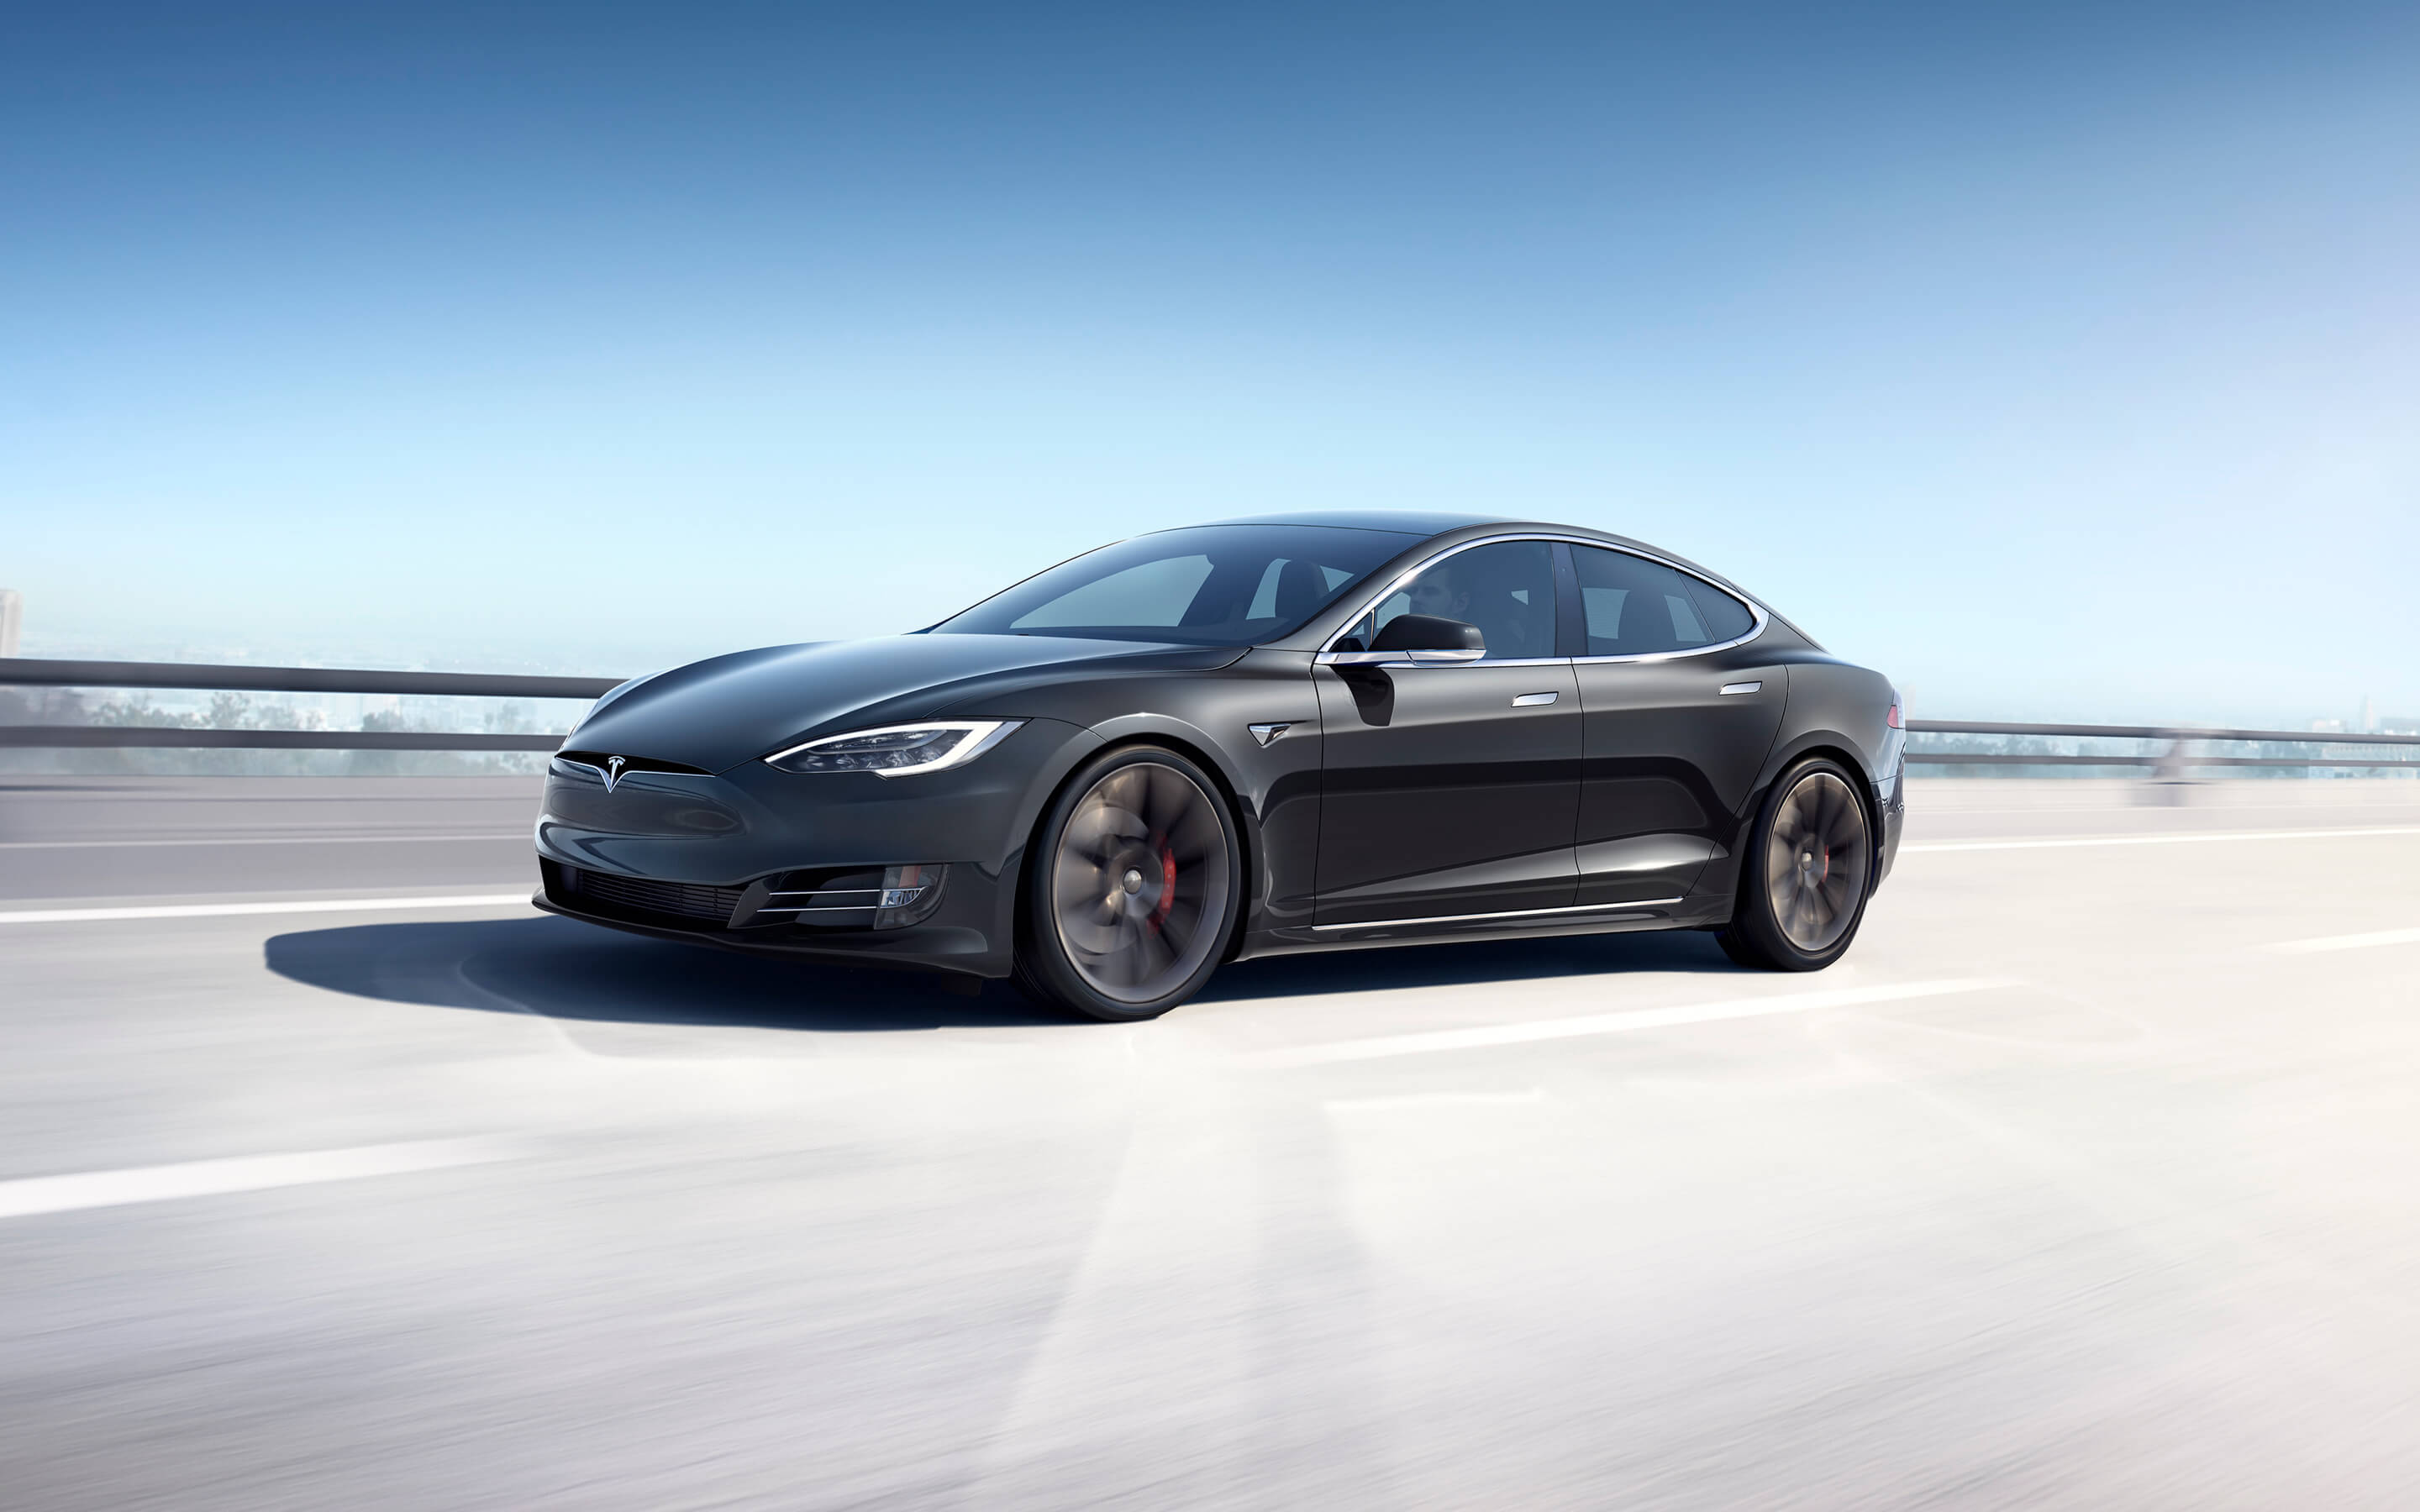 Tesla created a worthy competitor for the Porsche Taycan